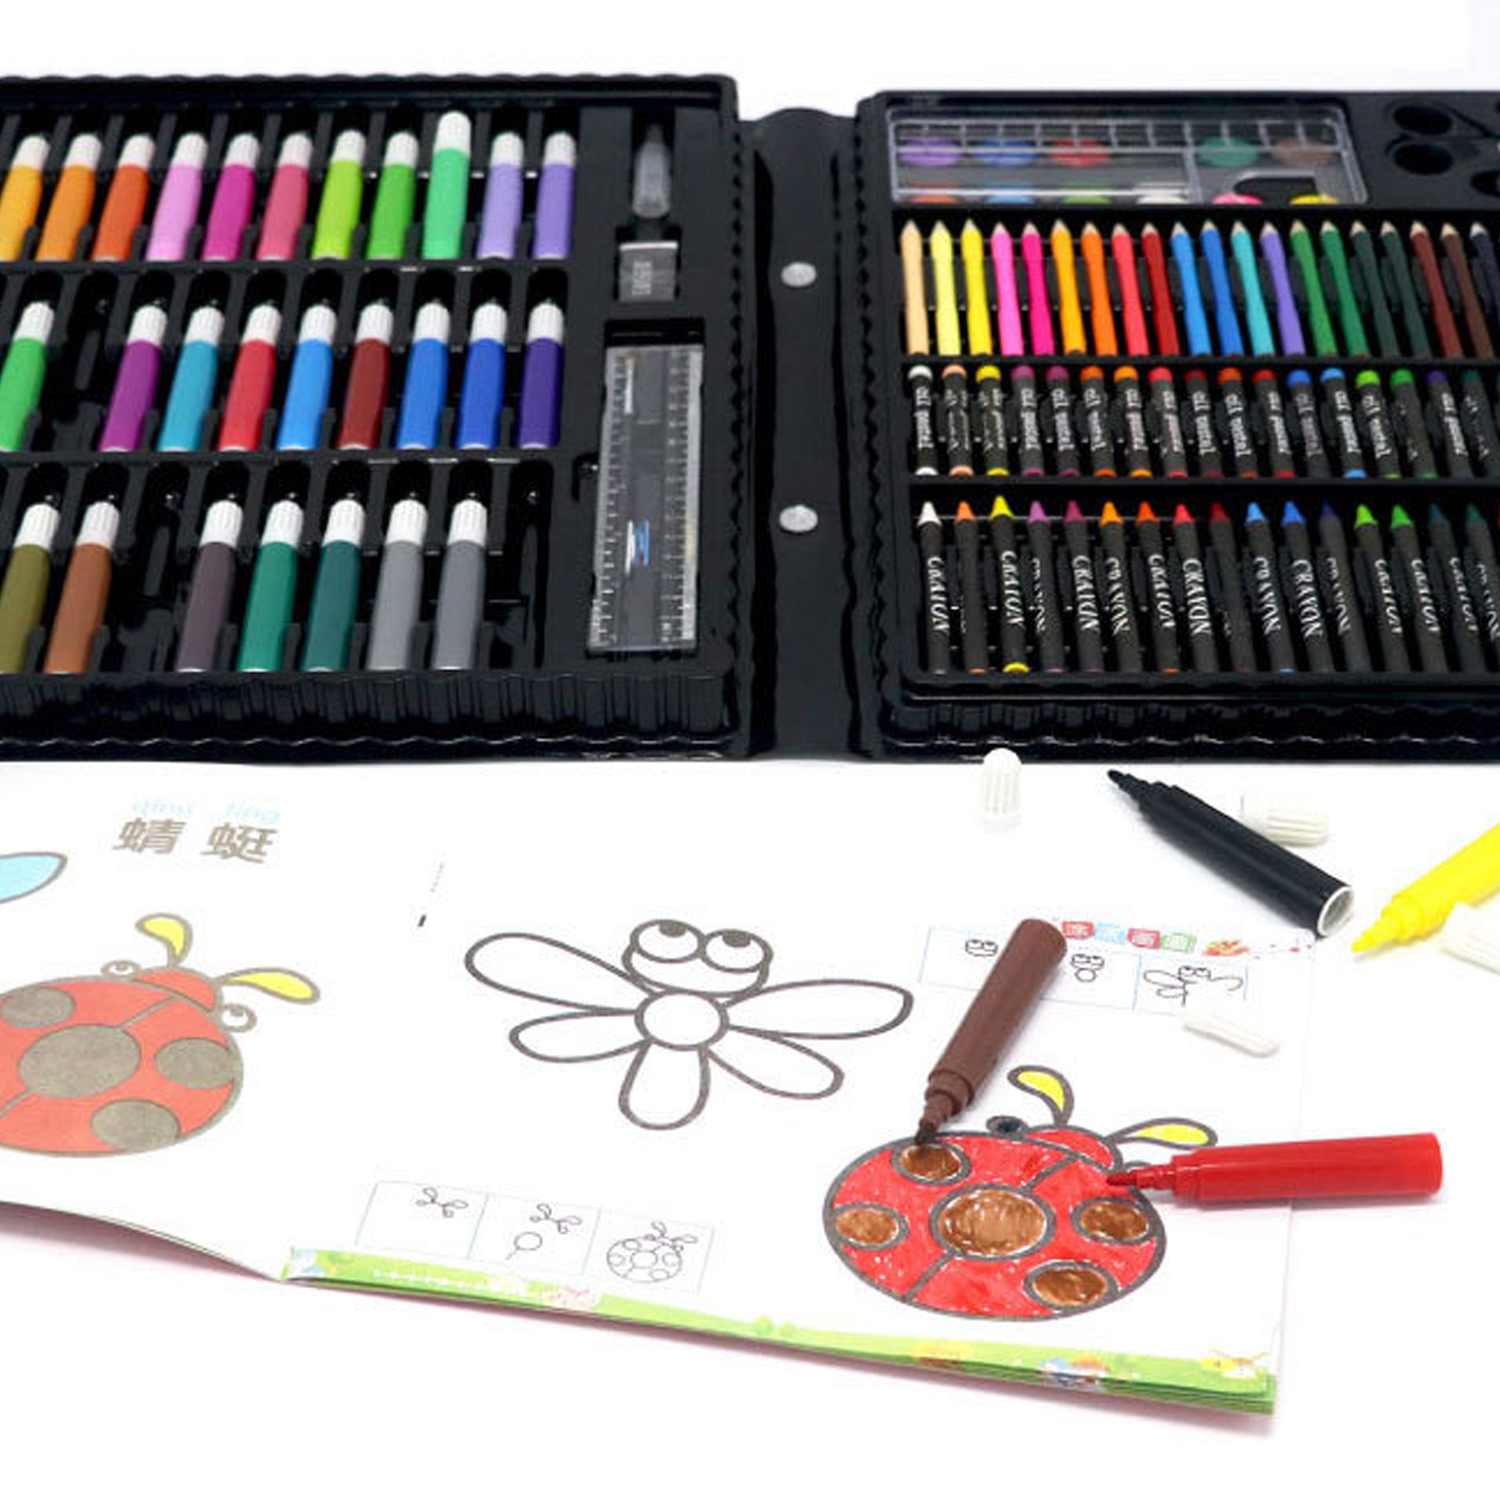 168PCS Painting Drawing Art Artist Set Kit Water Color Pen Crayon Oil Pastel Painting Tool Supplies Kids Stationery Gift Set 6